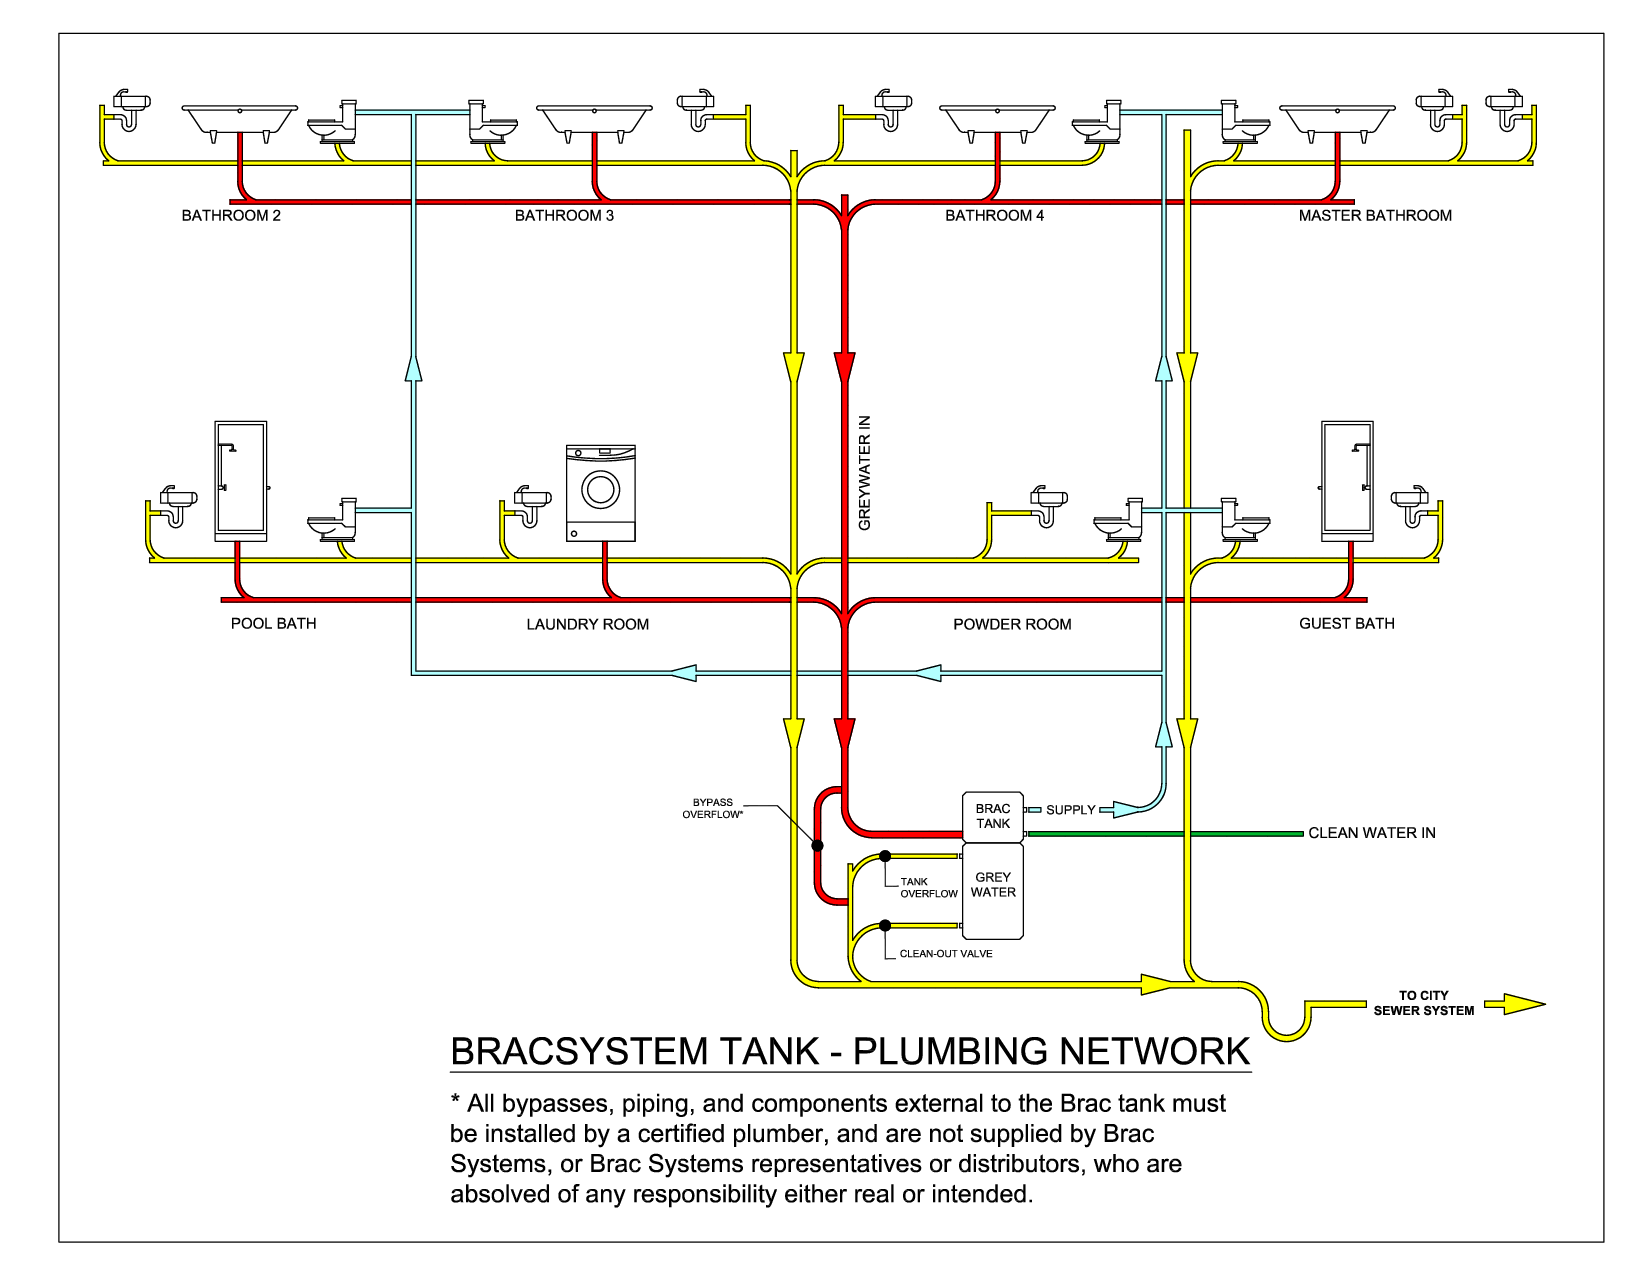 Mobile Home Plumbing Systems | Plumbing Network Diagram.pdf